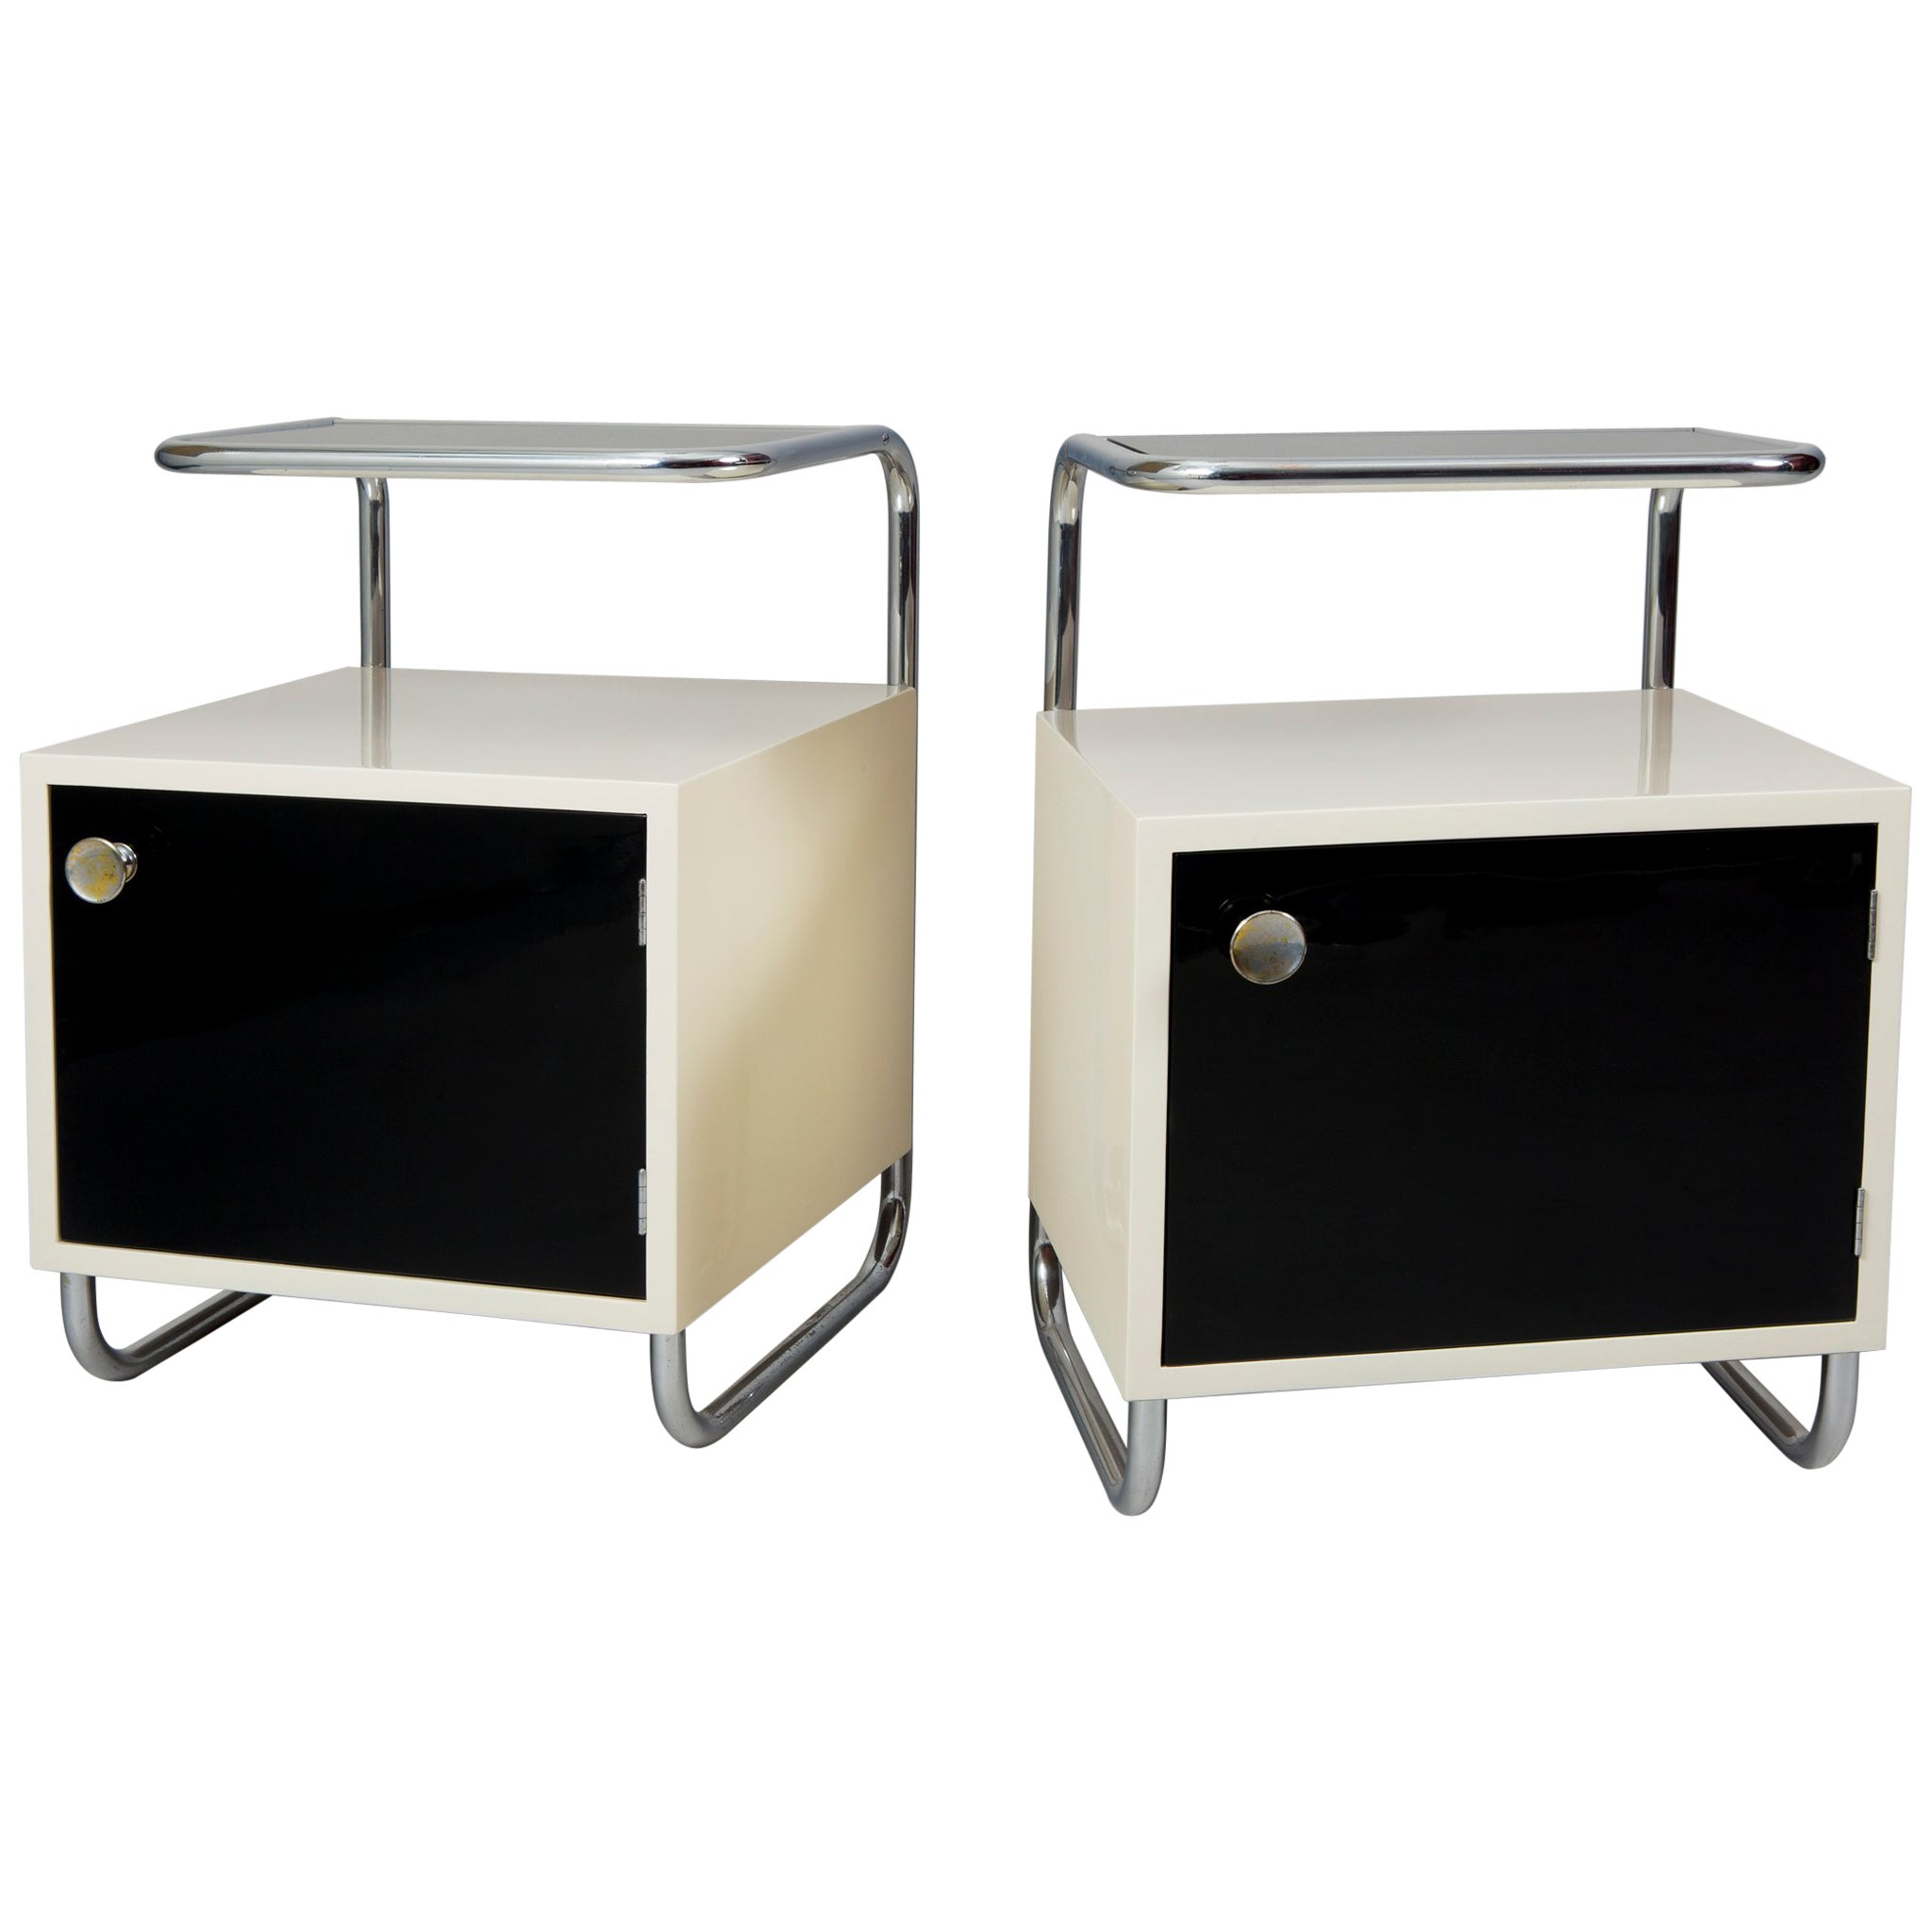 Pair of Black & White Functionalism Bed-Side Tables, Maker Vichr, Czechoslovakia